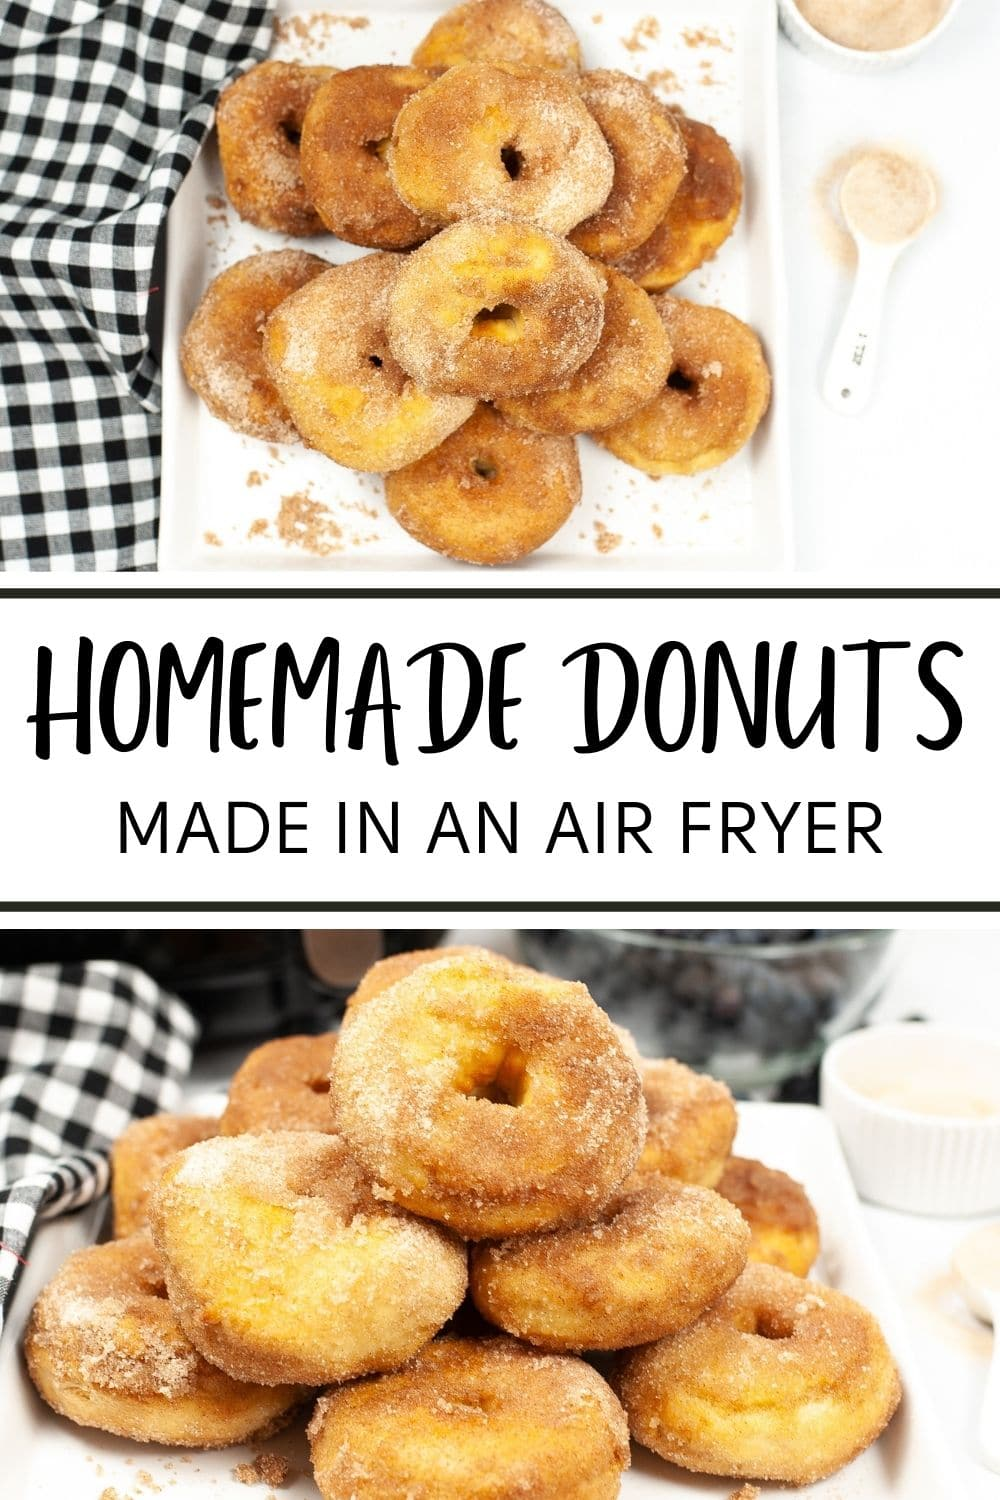 You won't believe how easy it is to make homemade donuts in your air fryer! Just 4 simple ingredients and 15 minutes are all you need. #airfryer #homemadedonuts #recipe via @wondermomwannab